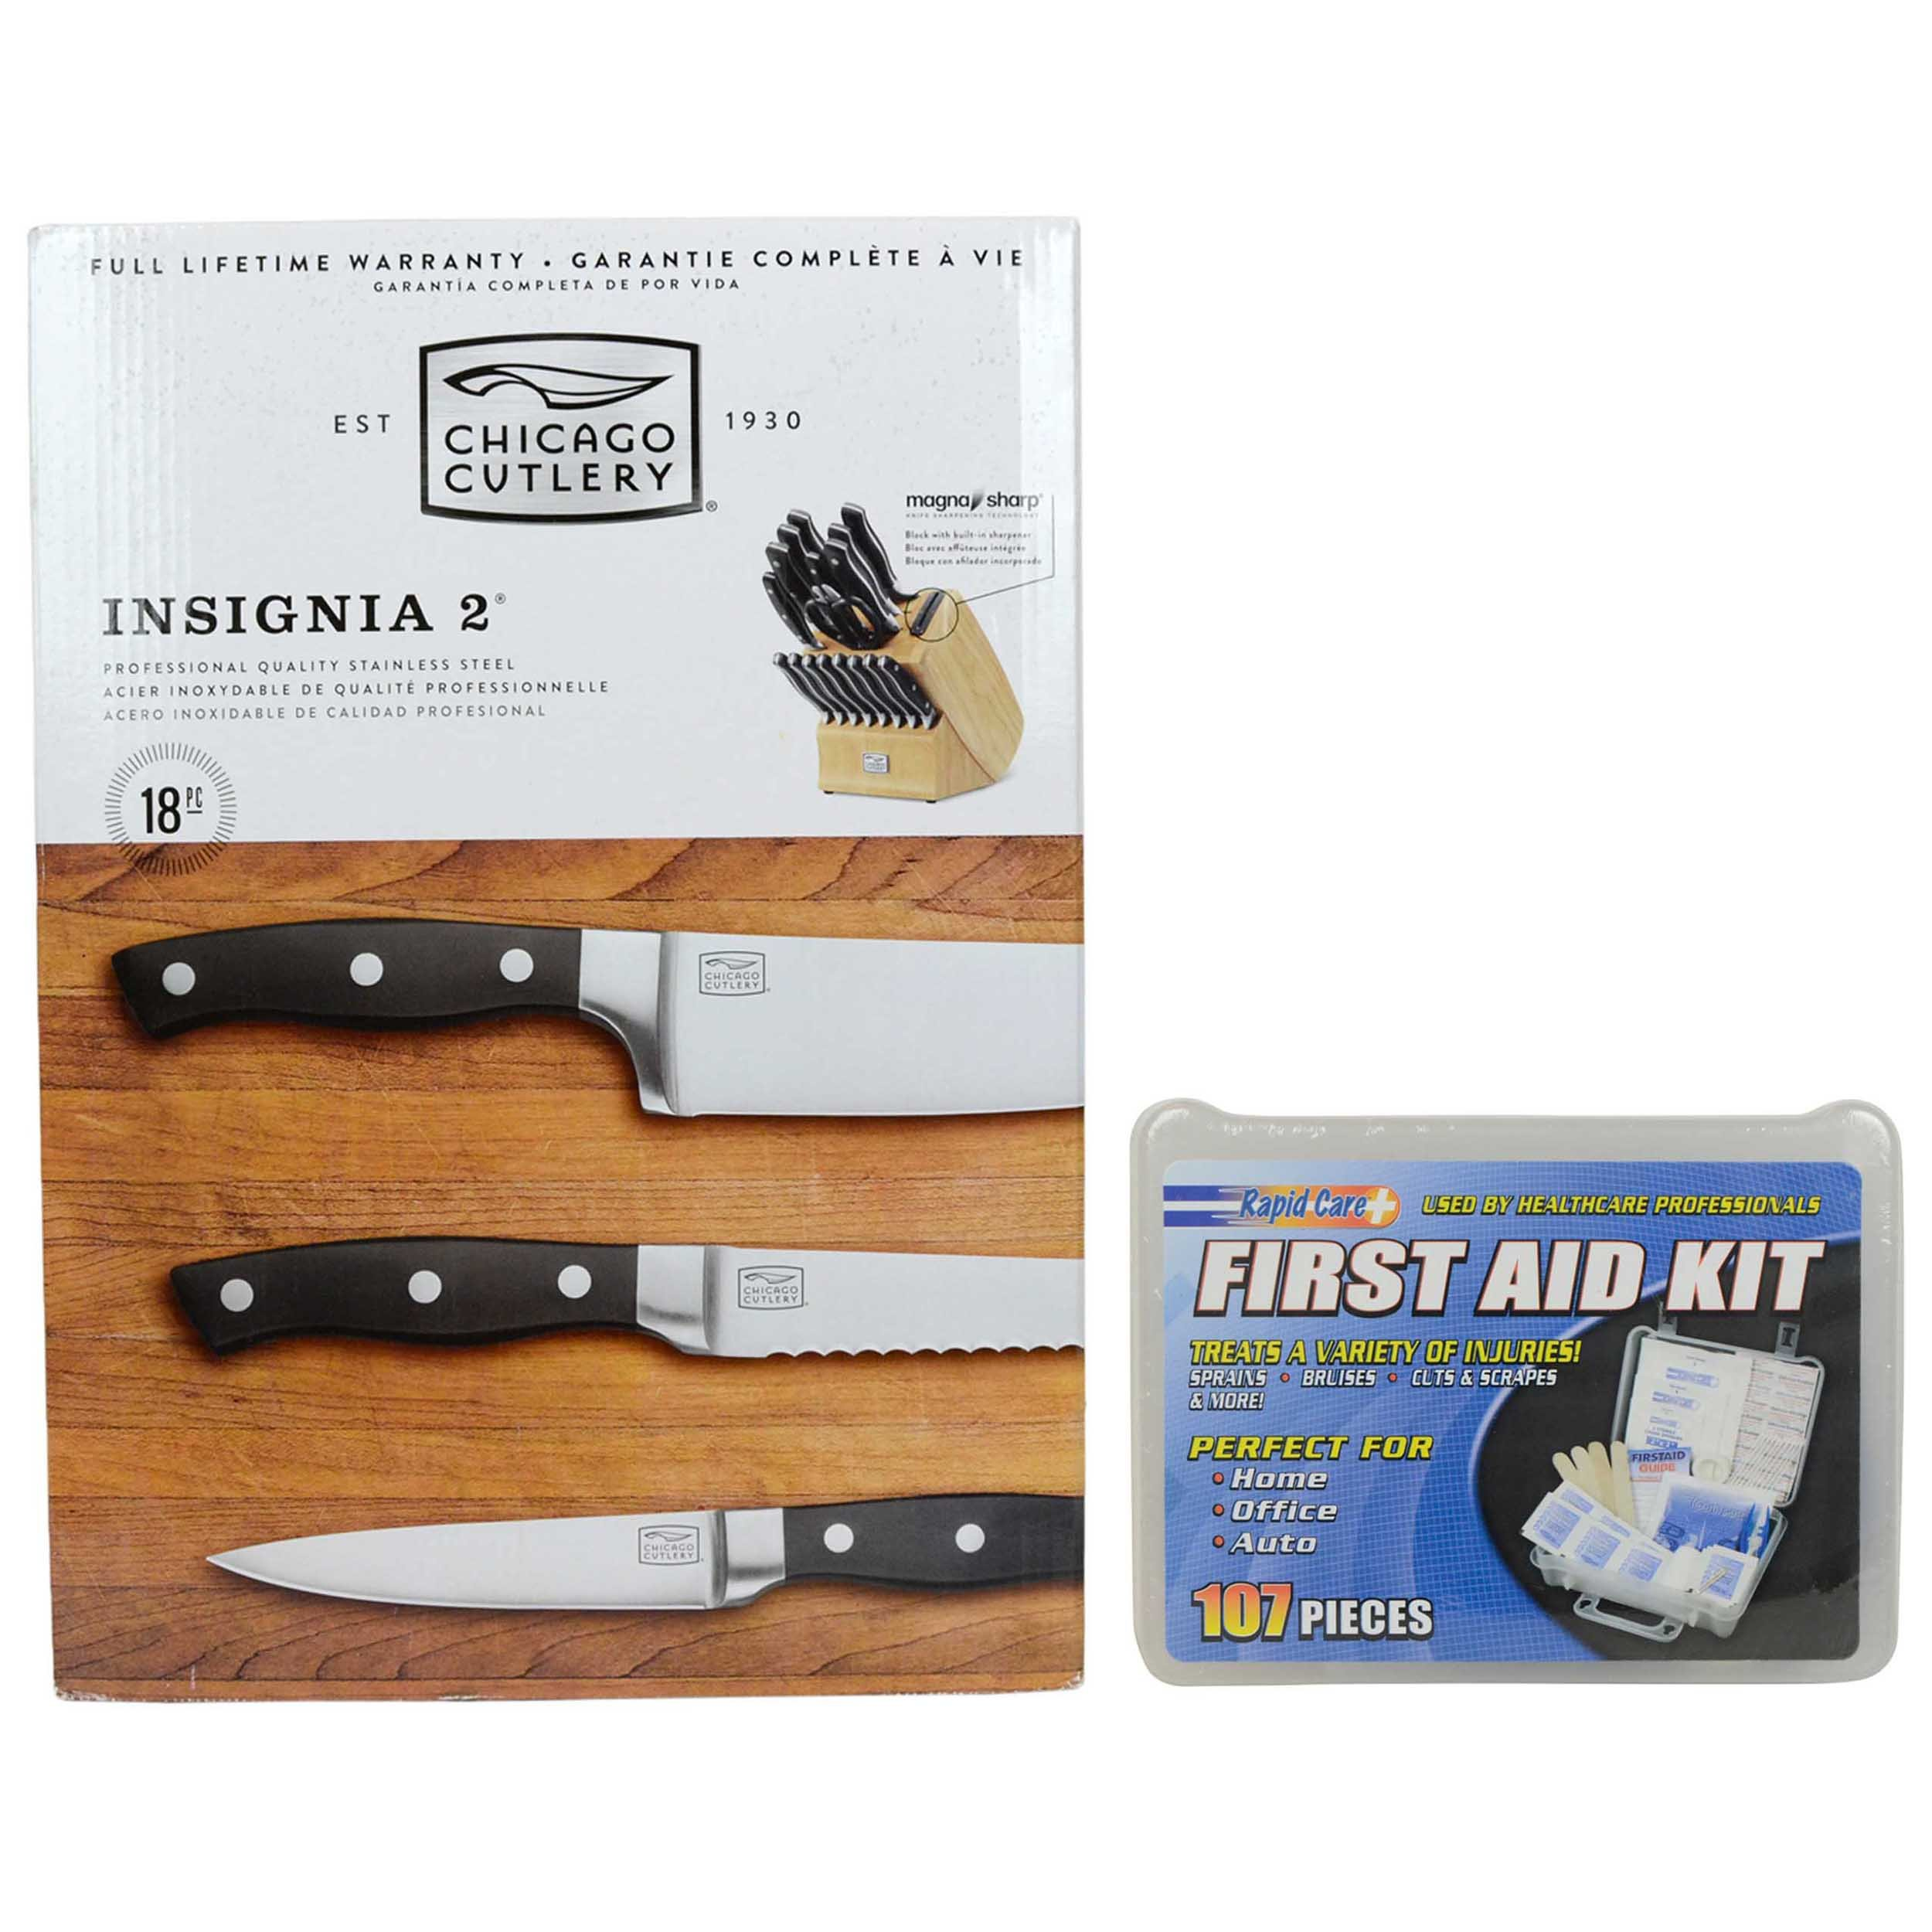 Chicago Cutlery 18pc Insignia2 Knife Block Set & (1) Rapid Care 107pc First Aid Kit by Chicago Cutlery & Rapid Care